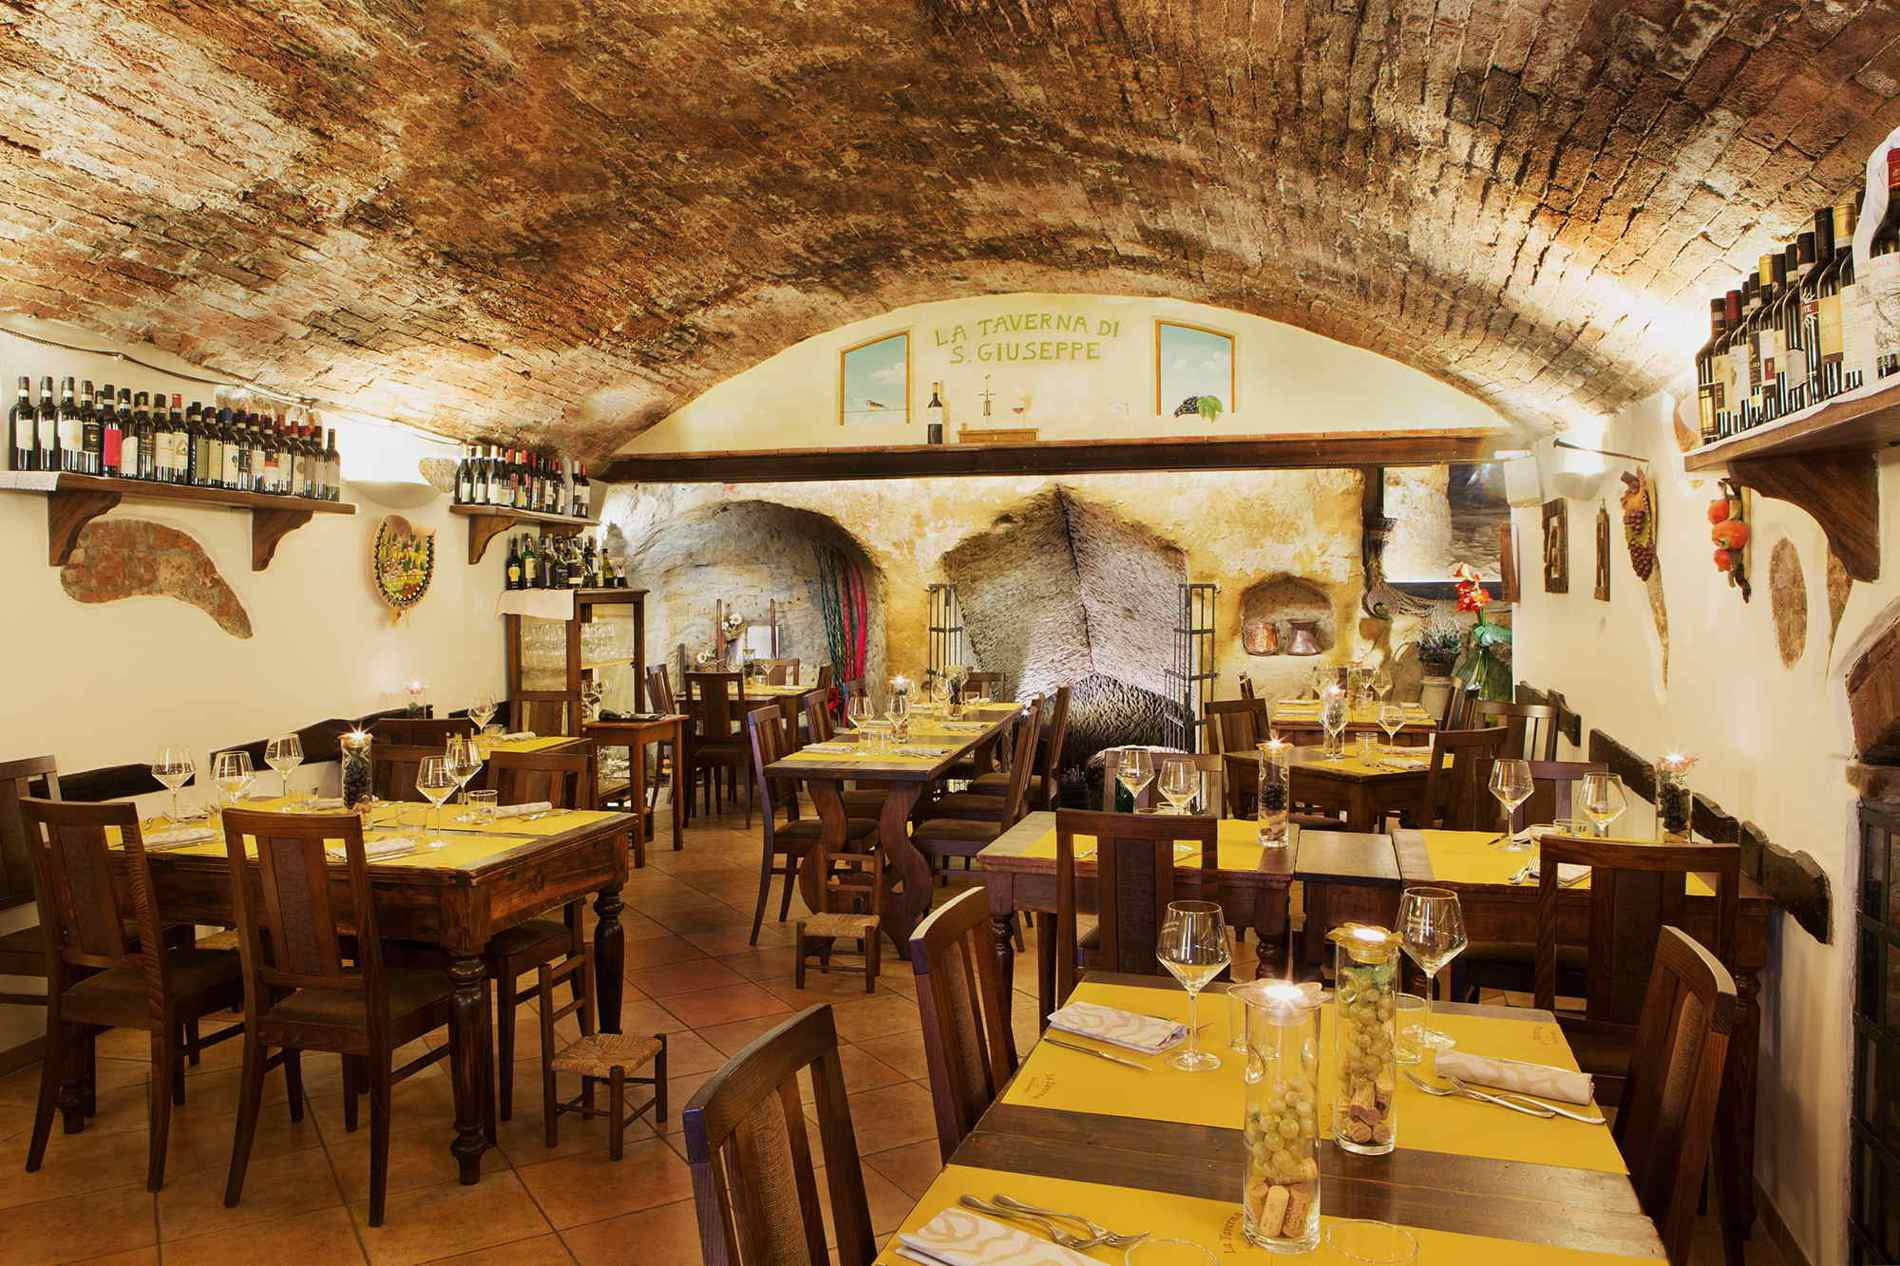 Family Pizza Leipzig Tuscany Restaurants Near Siena 3 Not To Miss Eateries